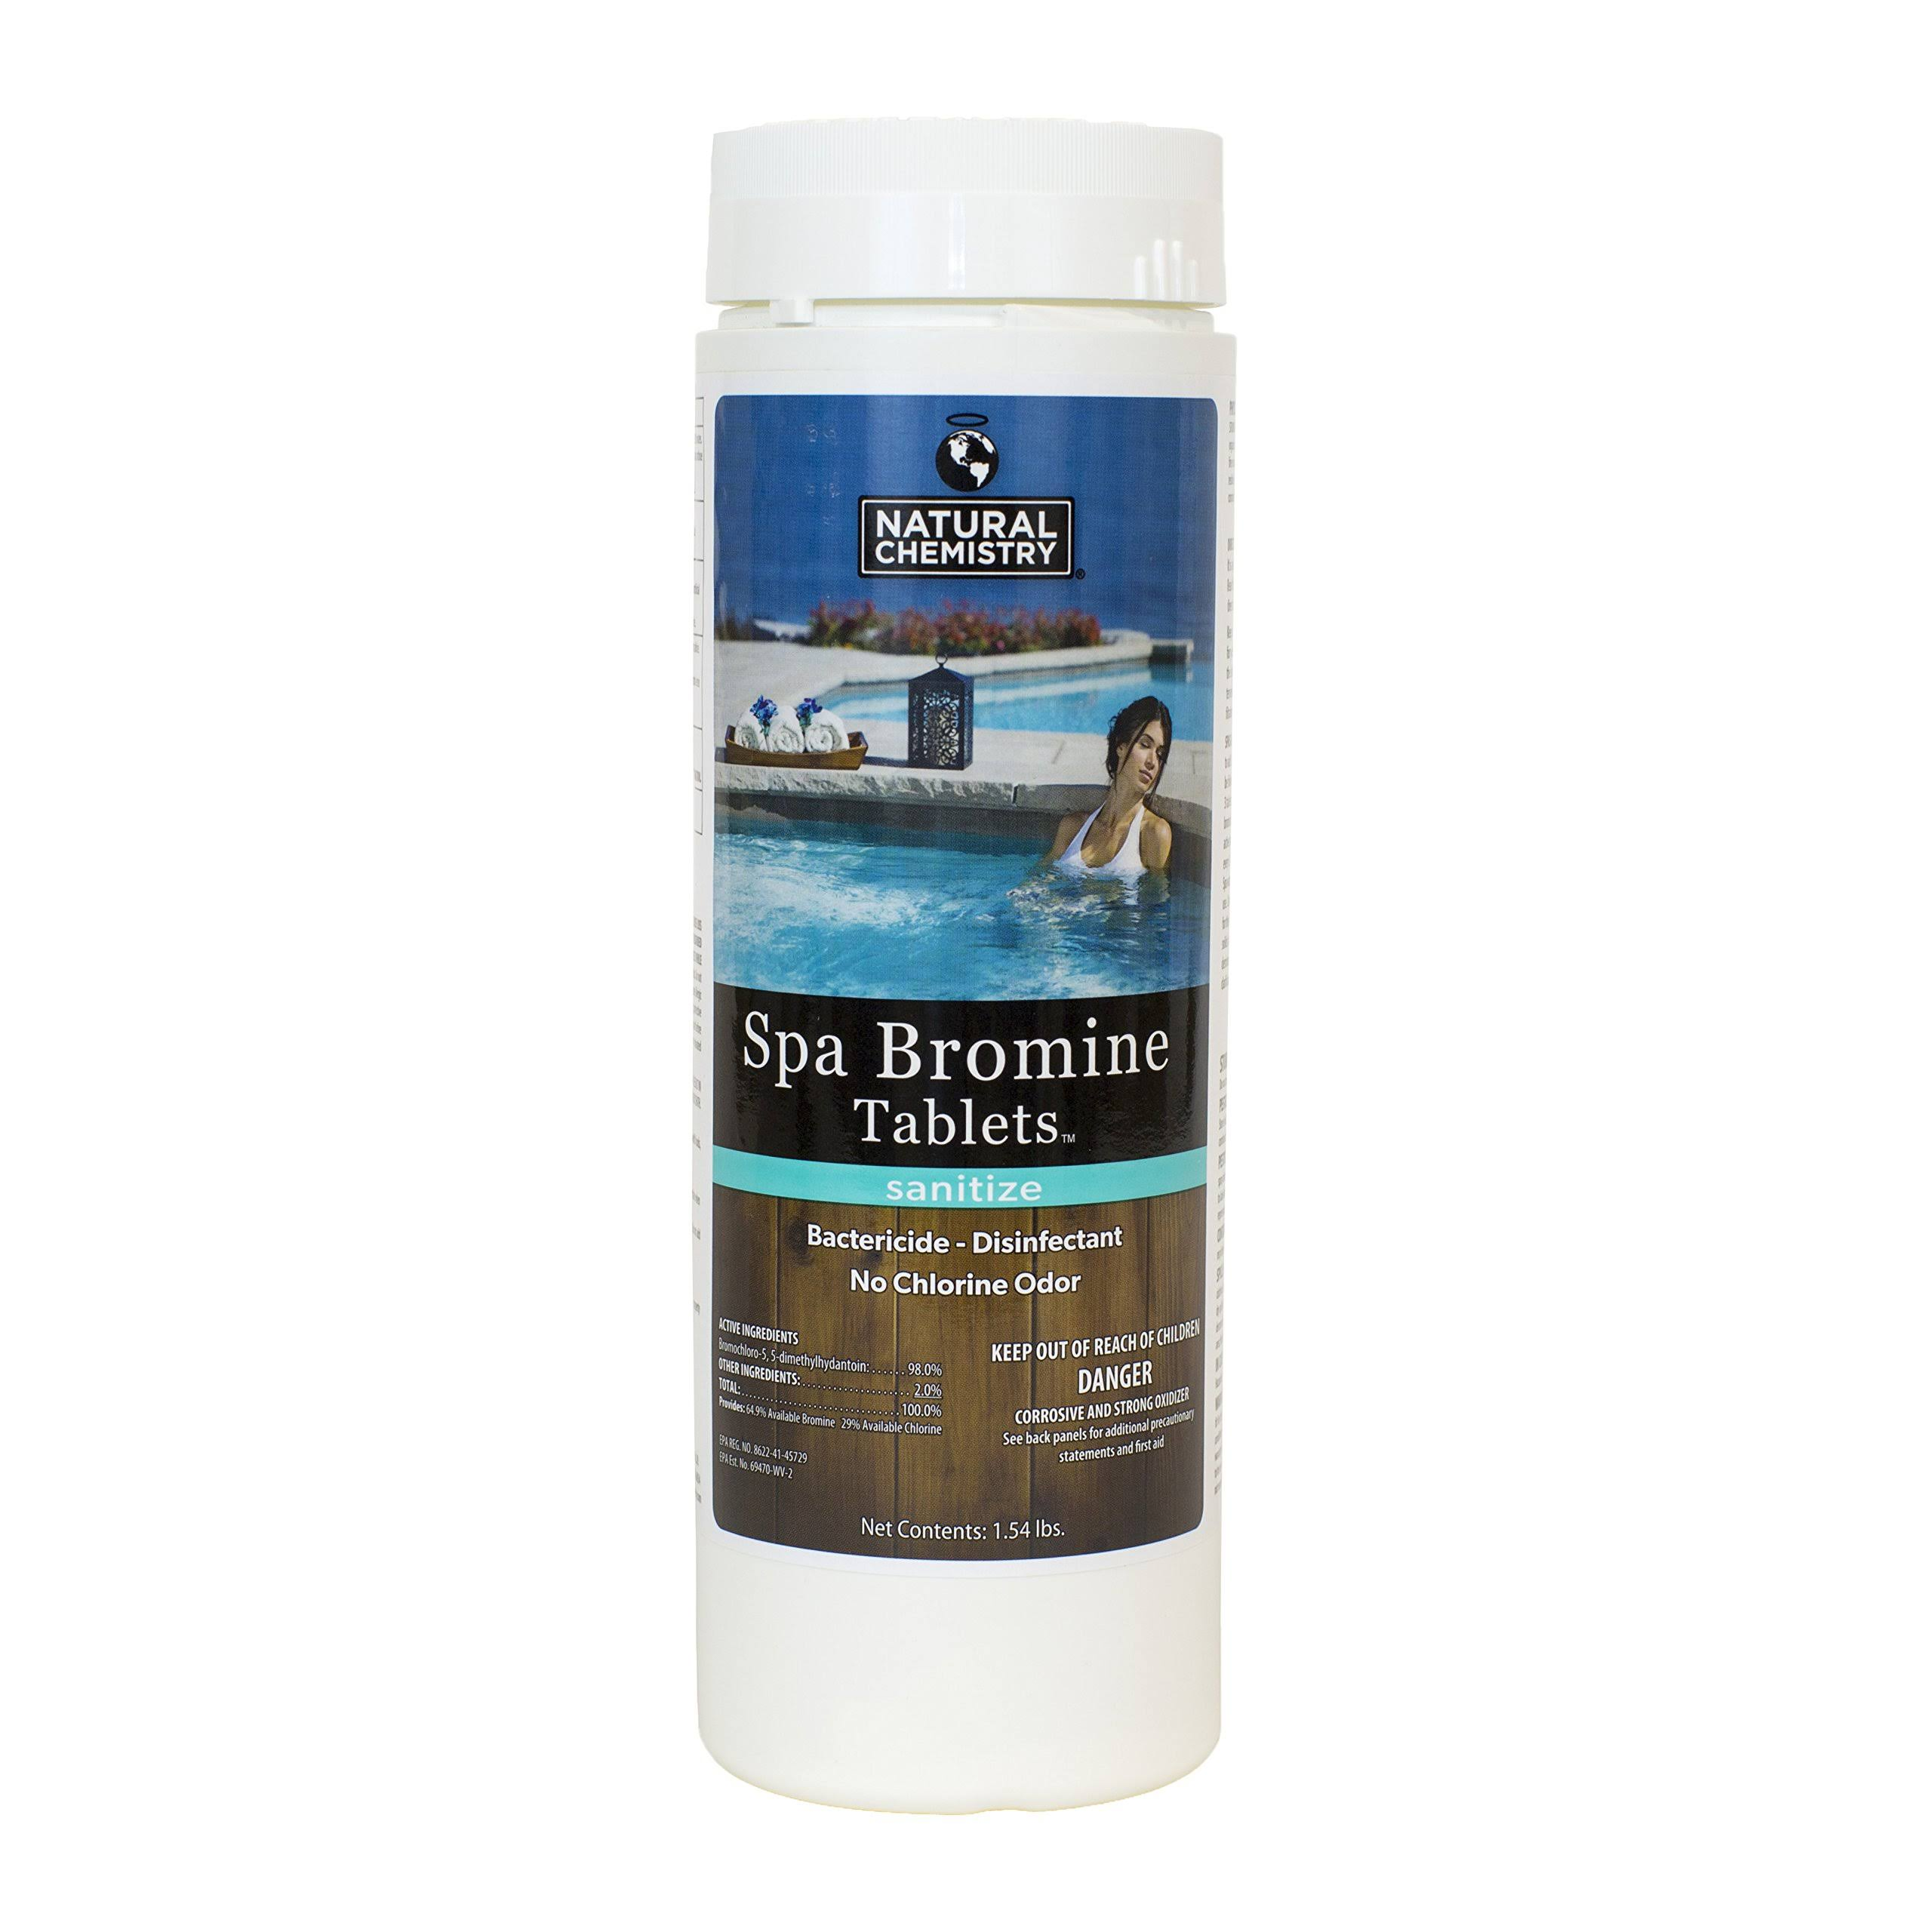 Natural Chemistry Spa Bromine Tablets - 1.54 Pounds